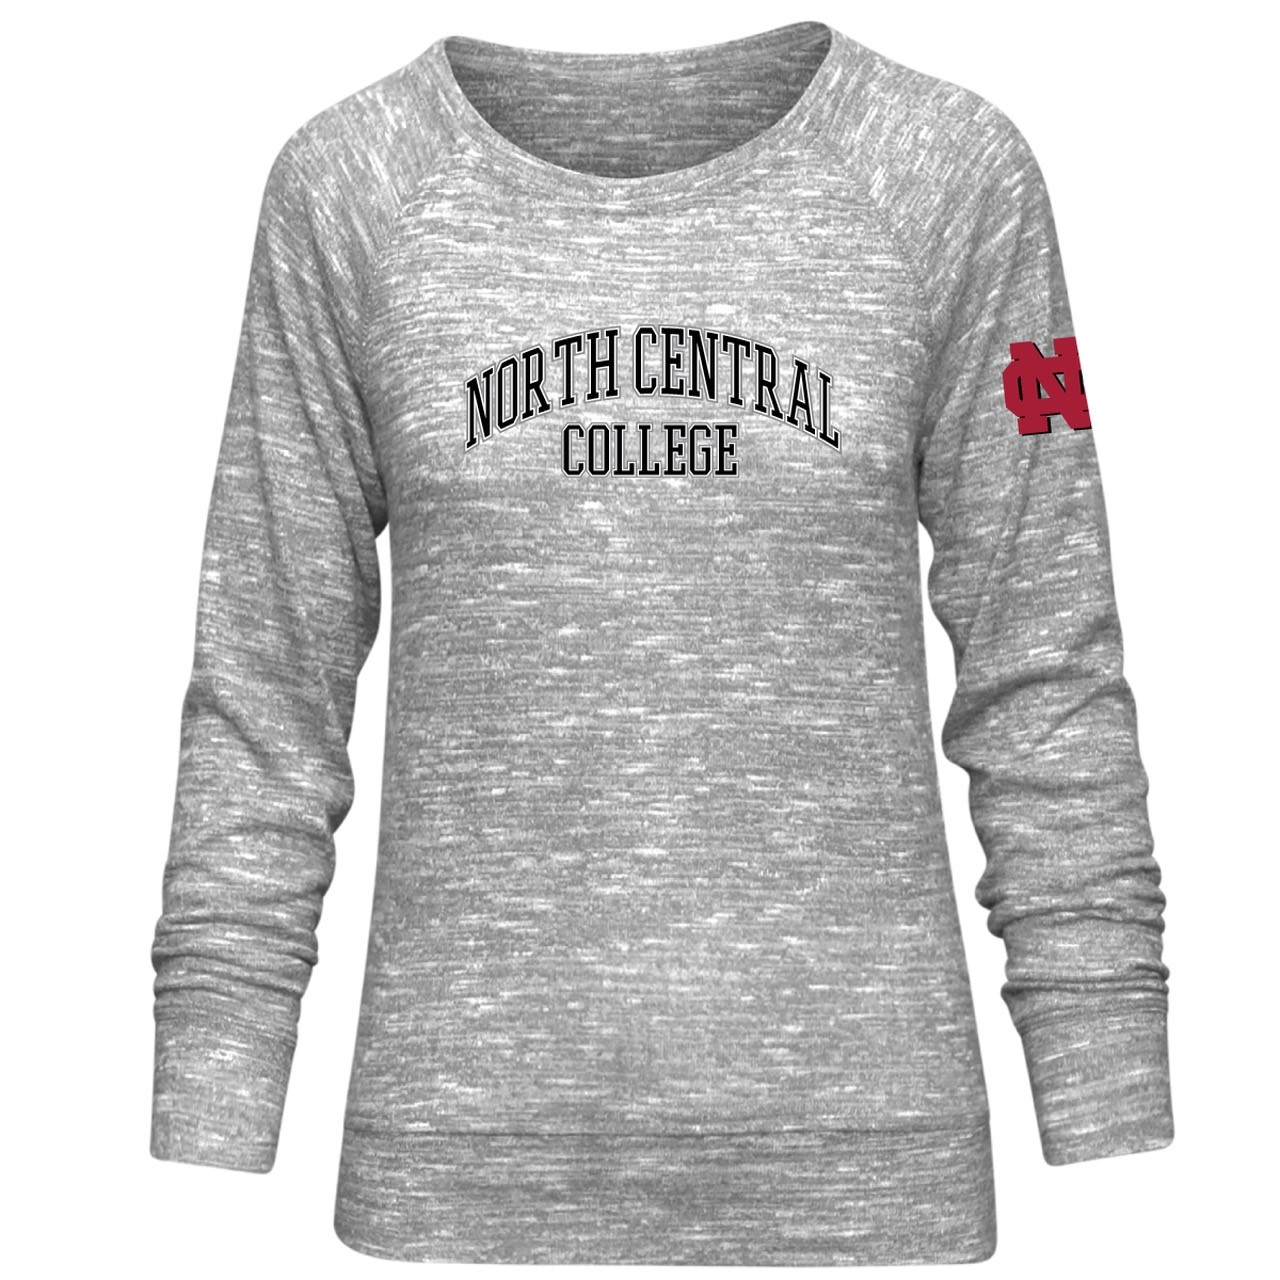 Image for the North Central College Carefree Crew Oxford by Camp David product